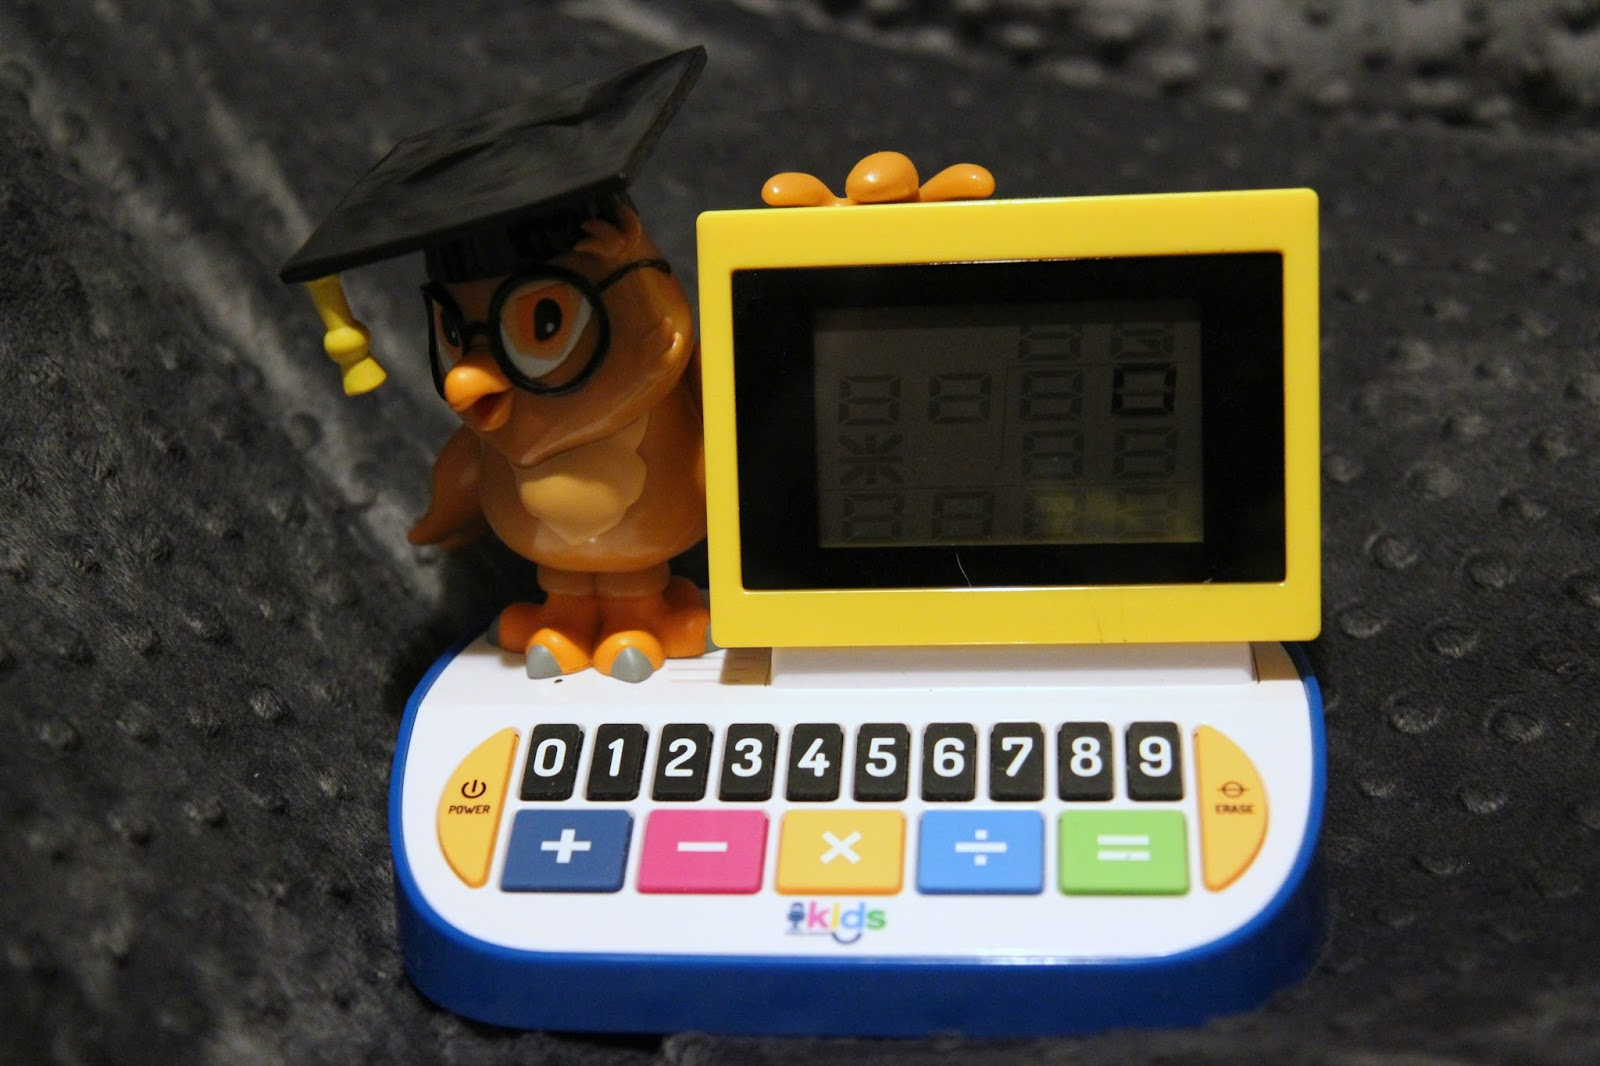 Review Of The Wise Ol Owl Blackboard Calculator From